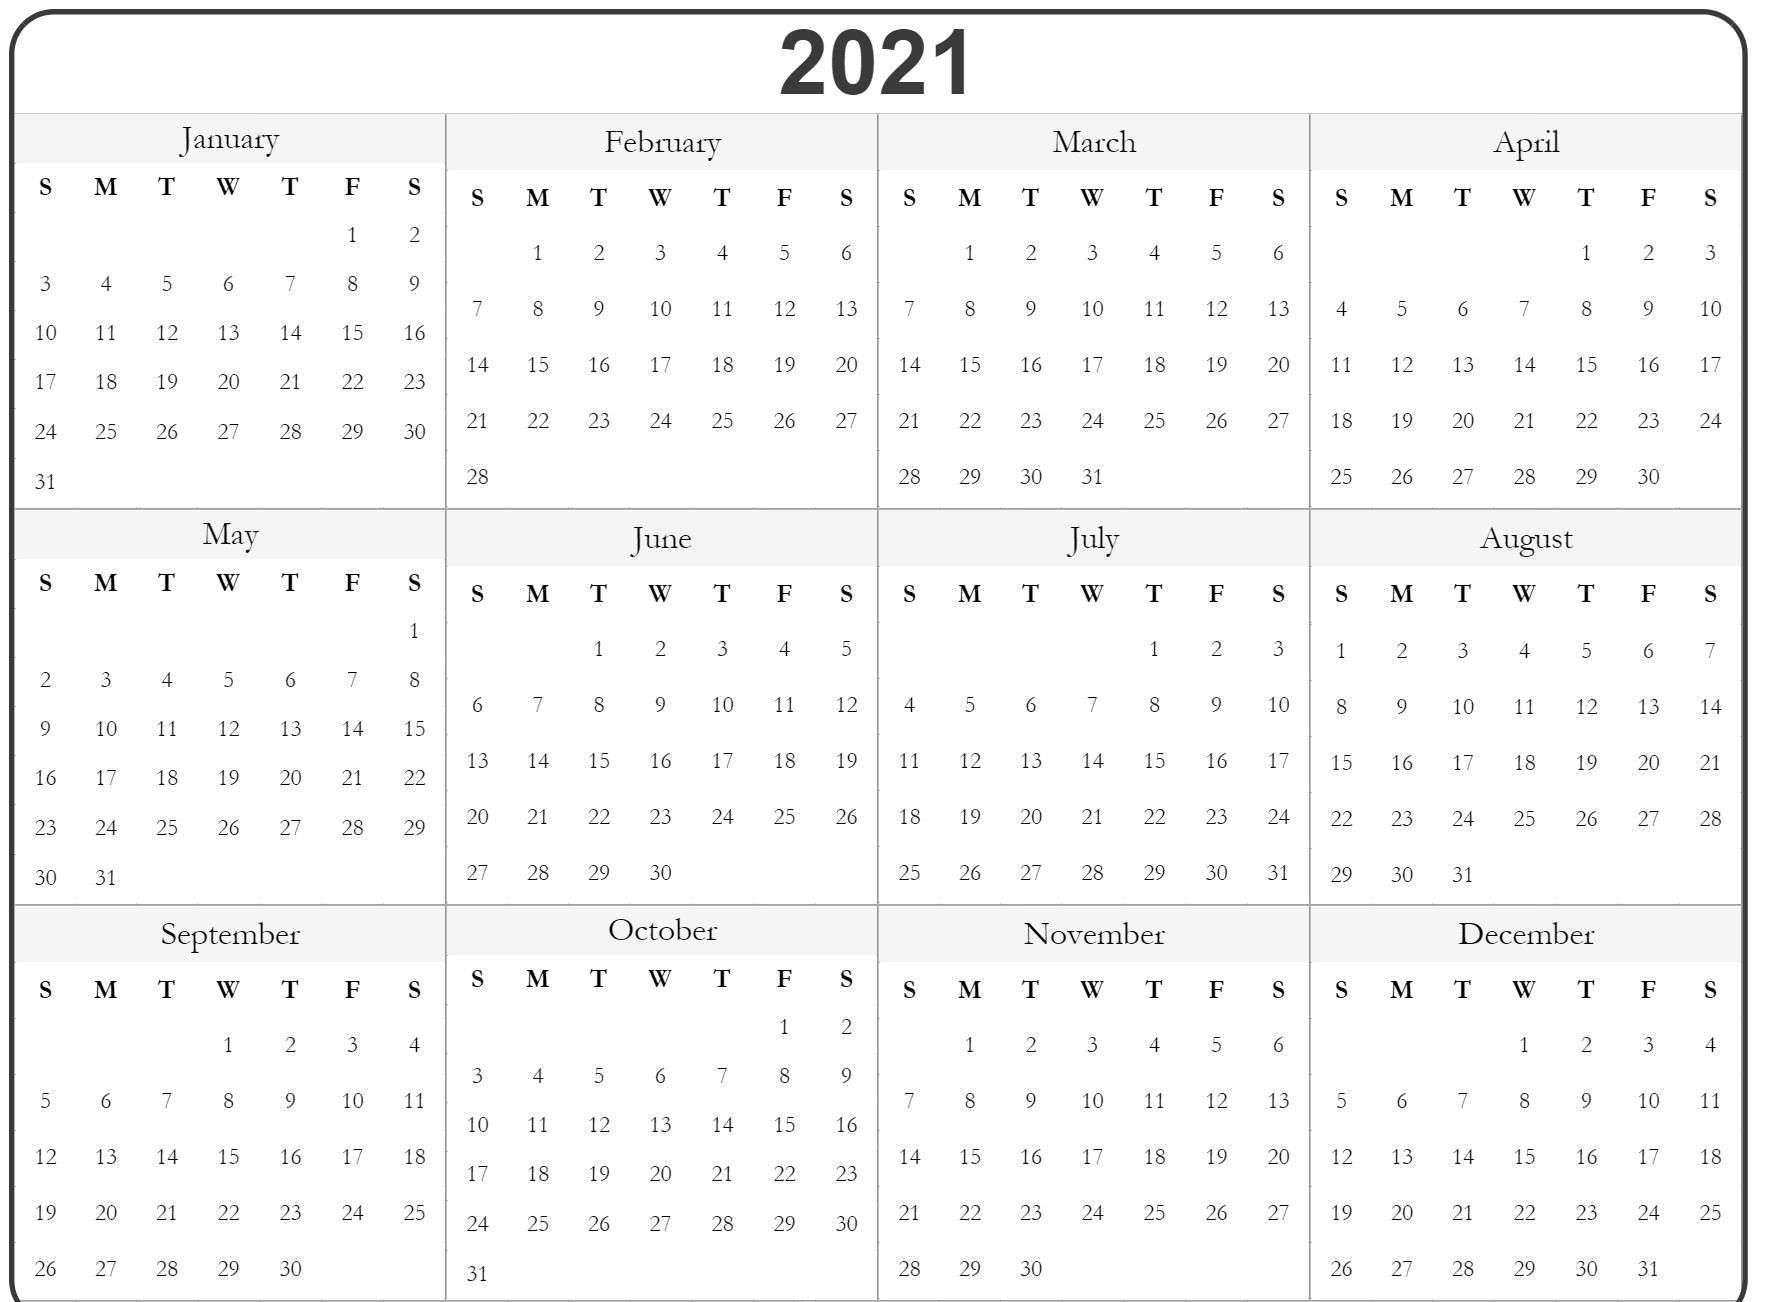 Catch Calendar With Days Numbered For 2021